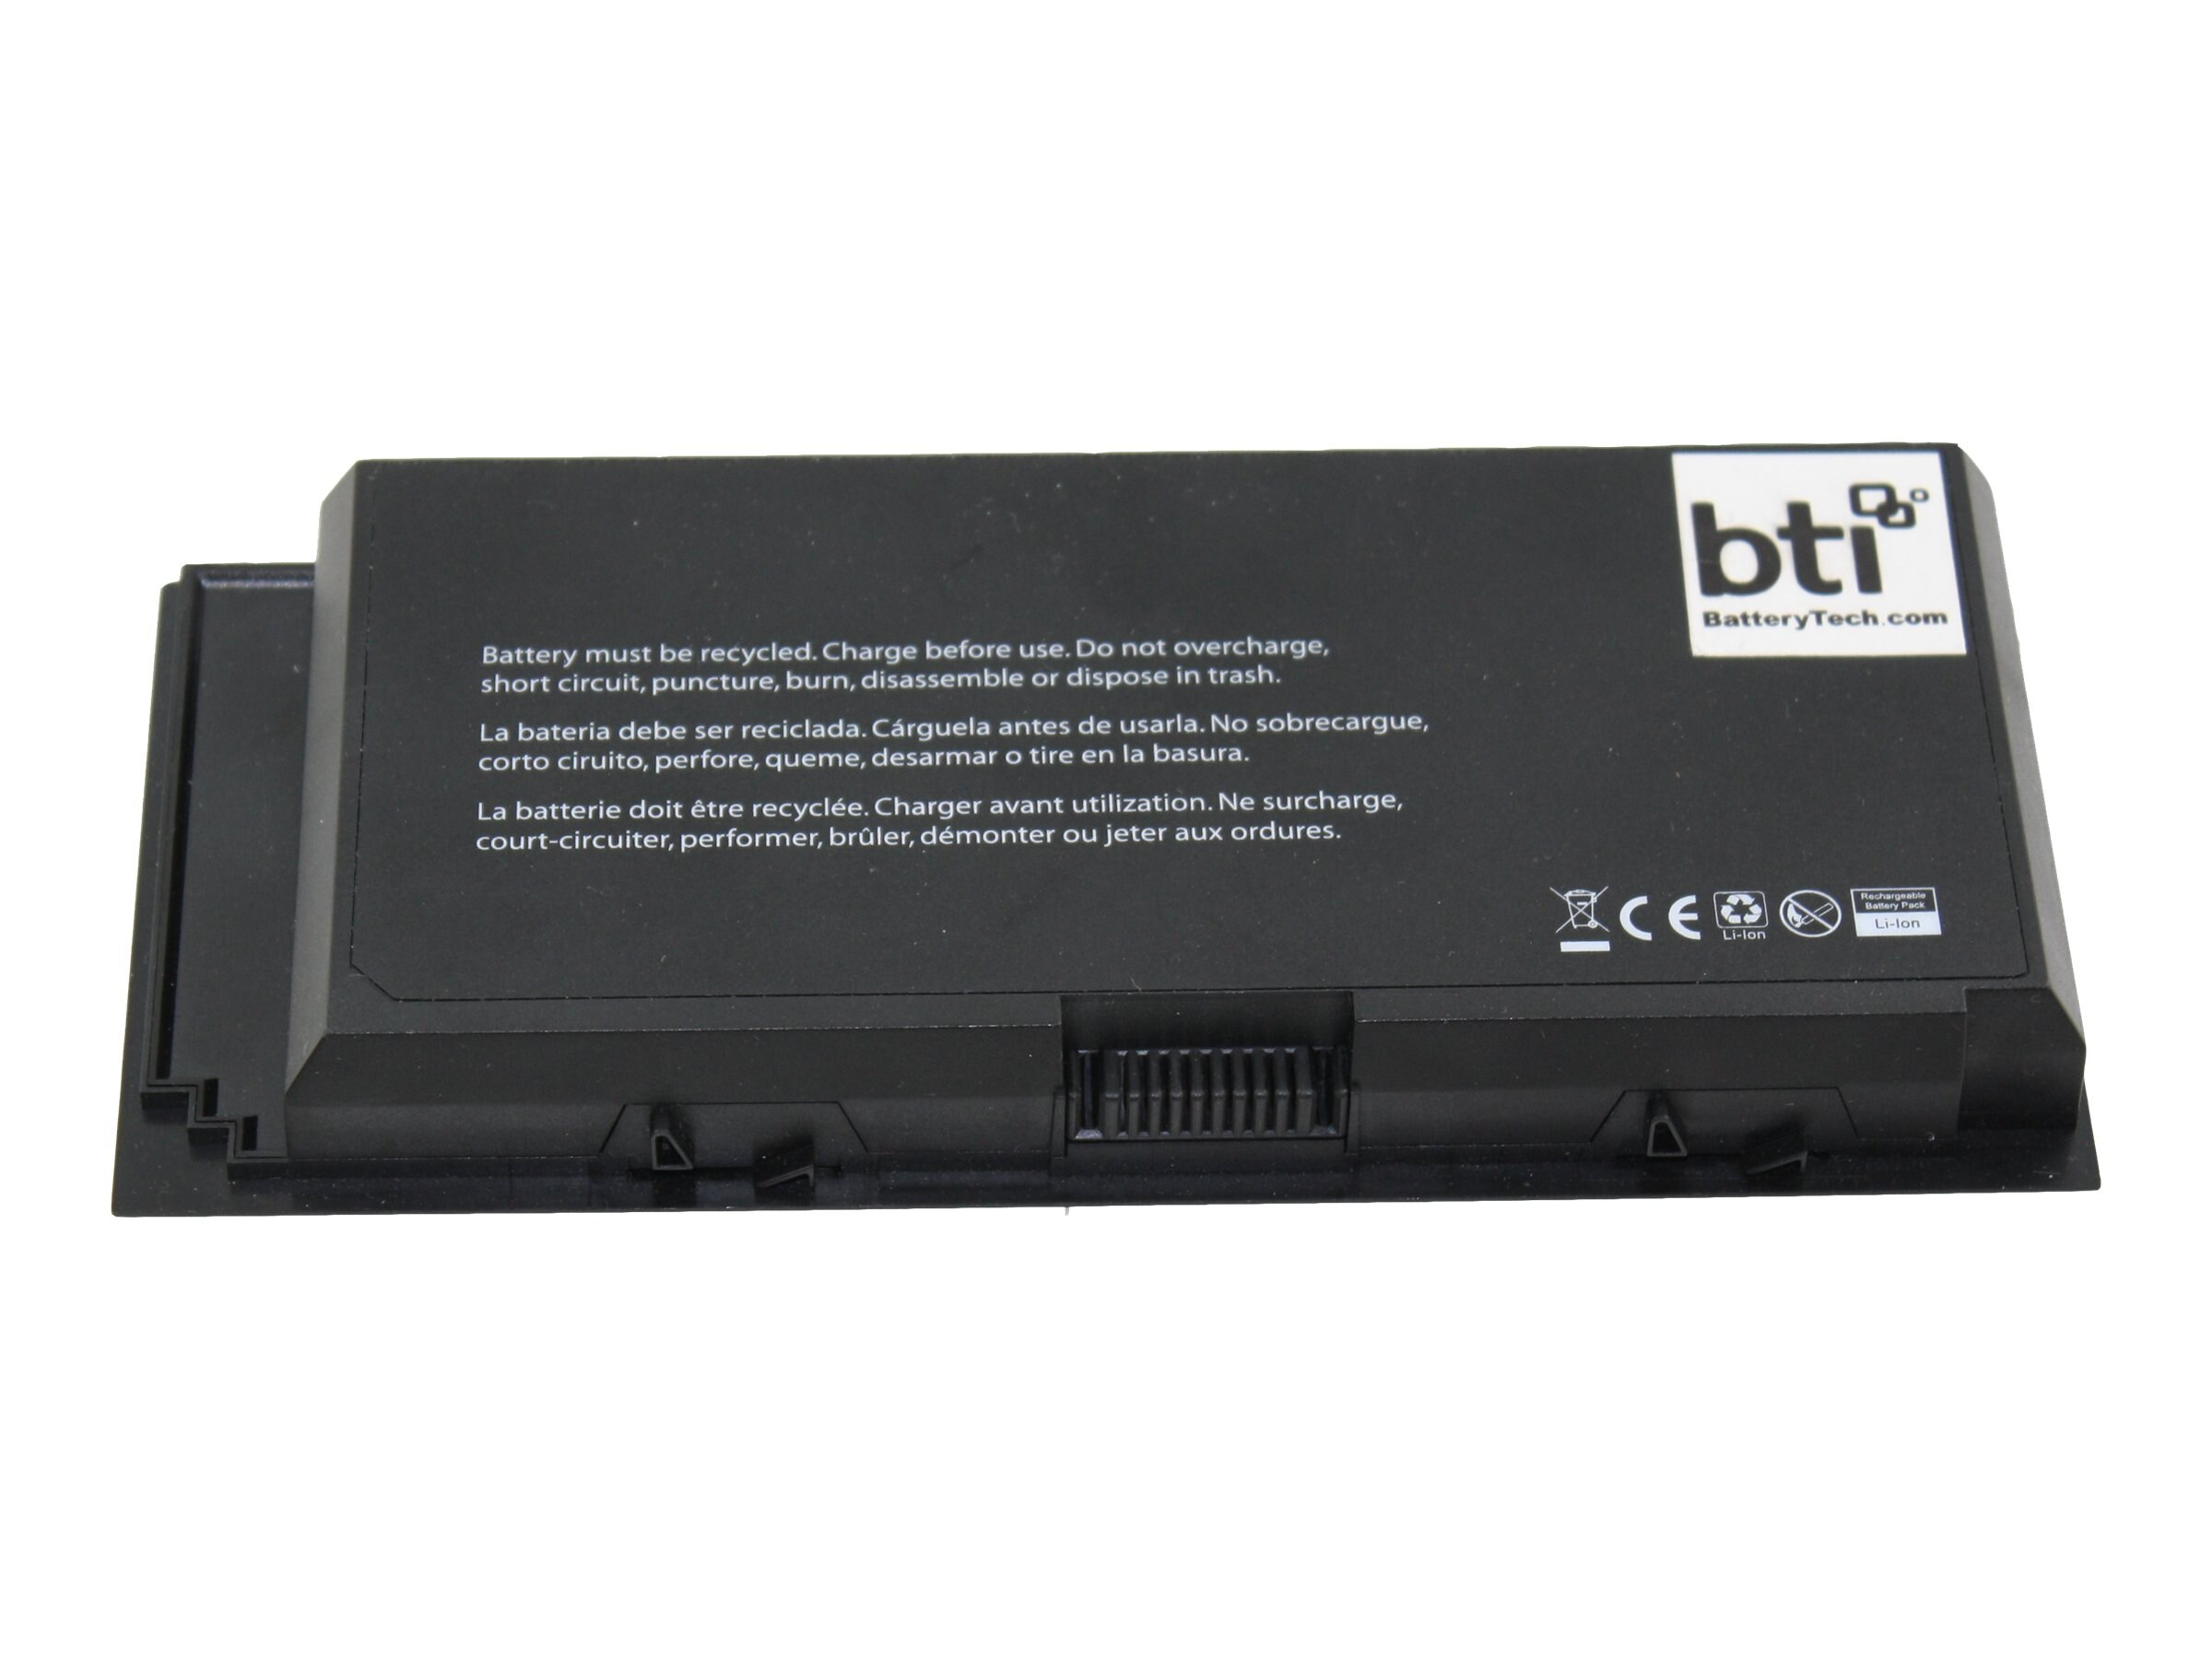 BTI 6-Cell Battery for Dell Precision M4600 312-1177 312-1178 0RTKDH 3DJH7, DL-M4600X6, 16124243, Batteries - Notebook